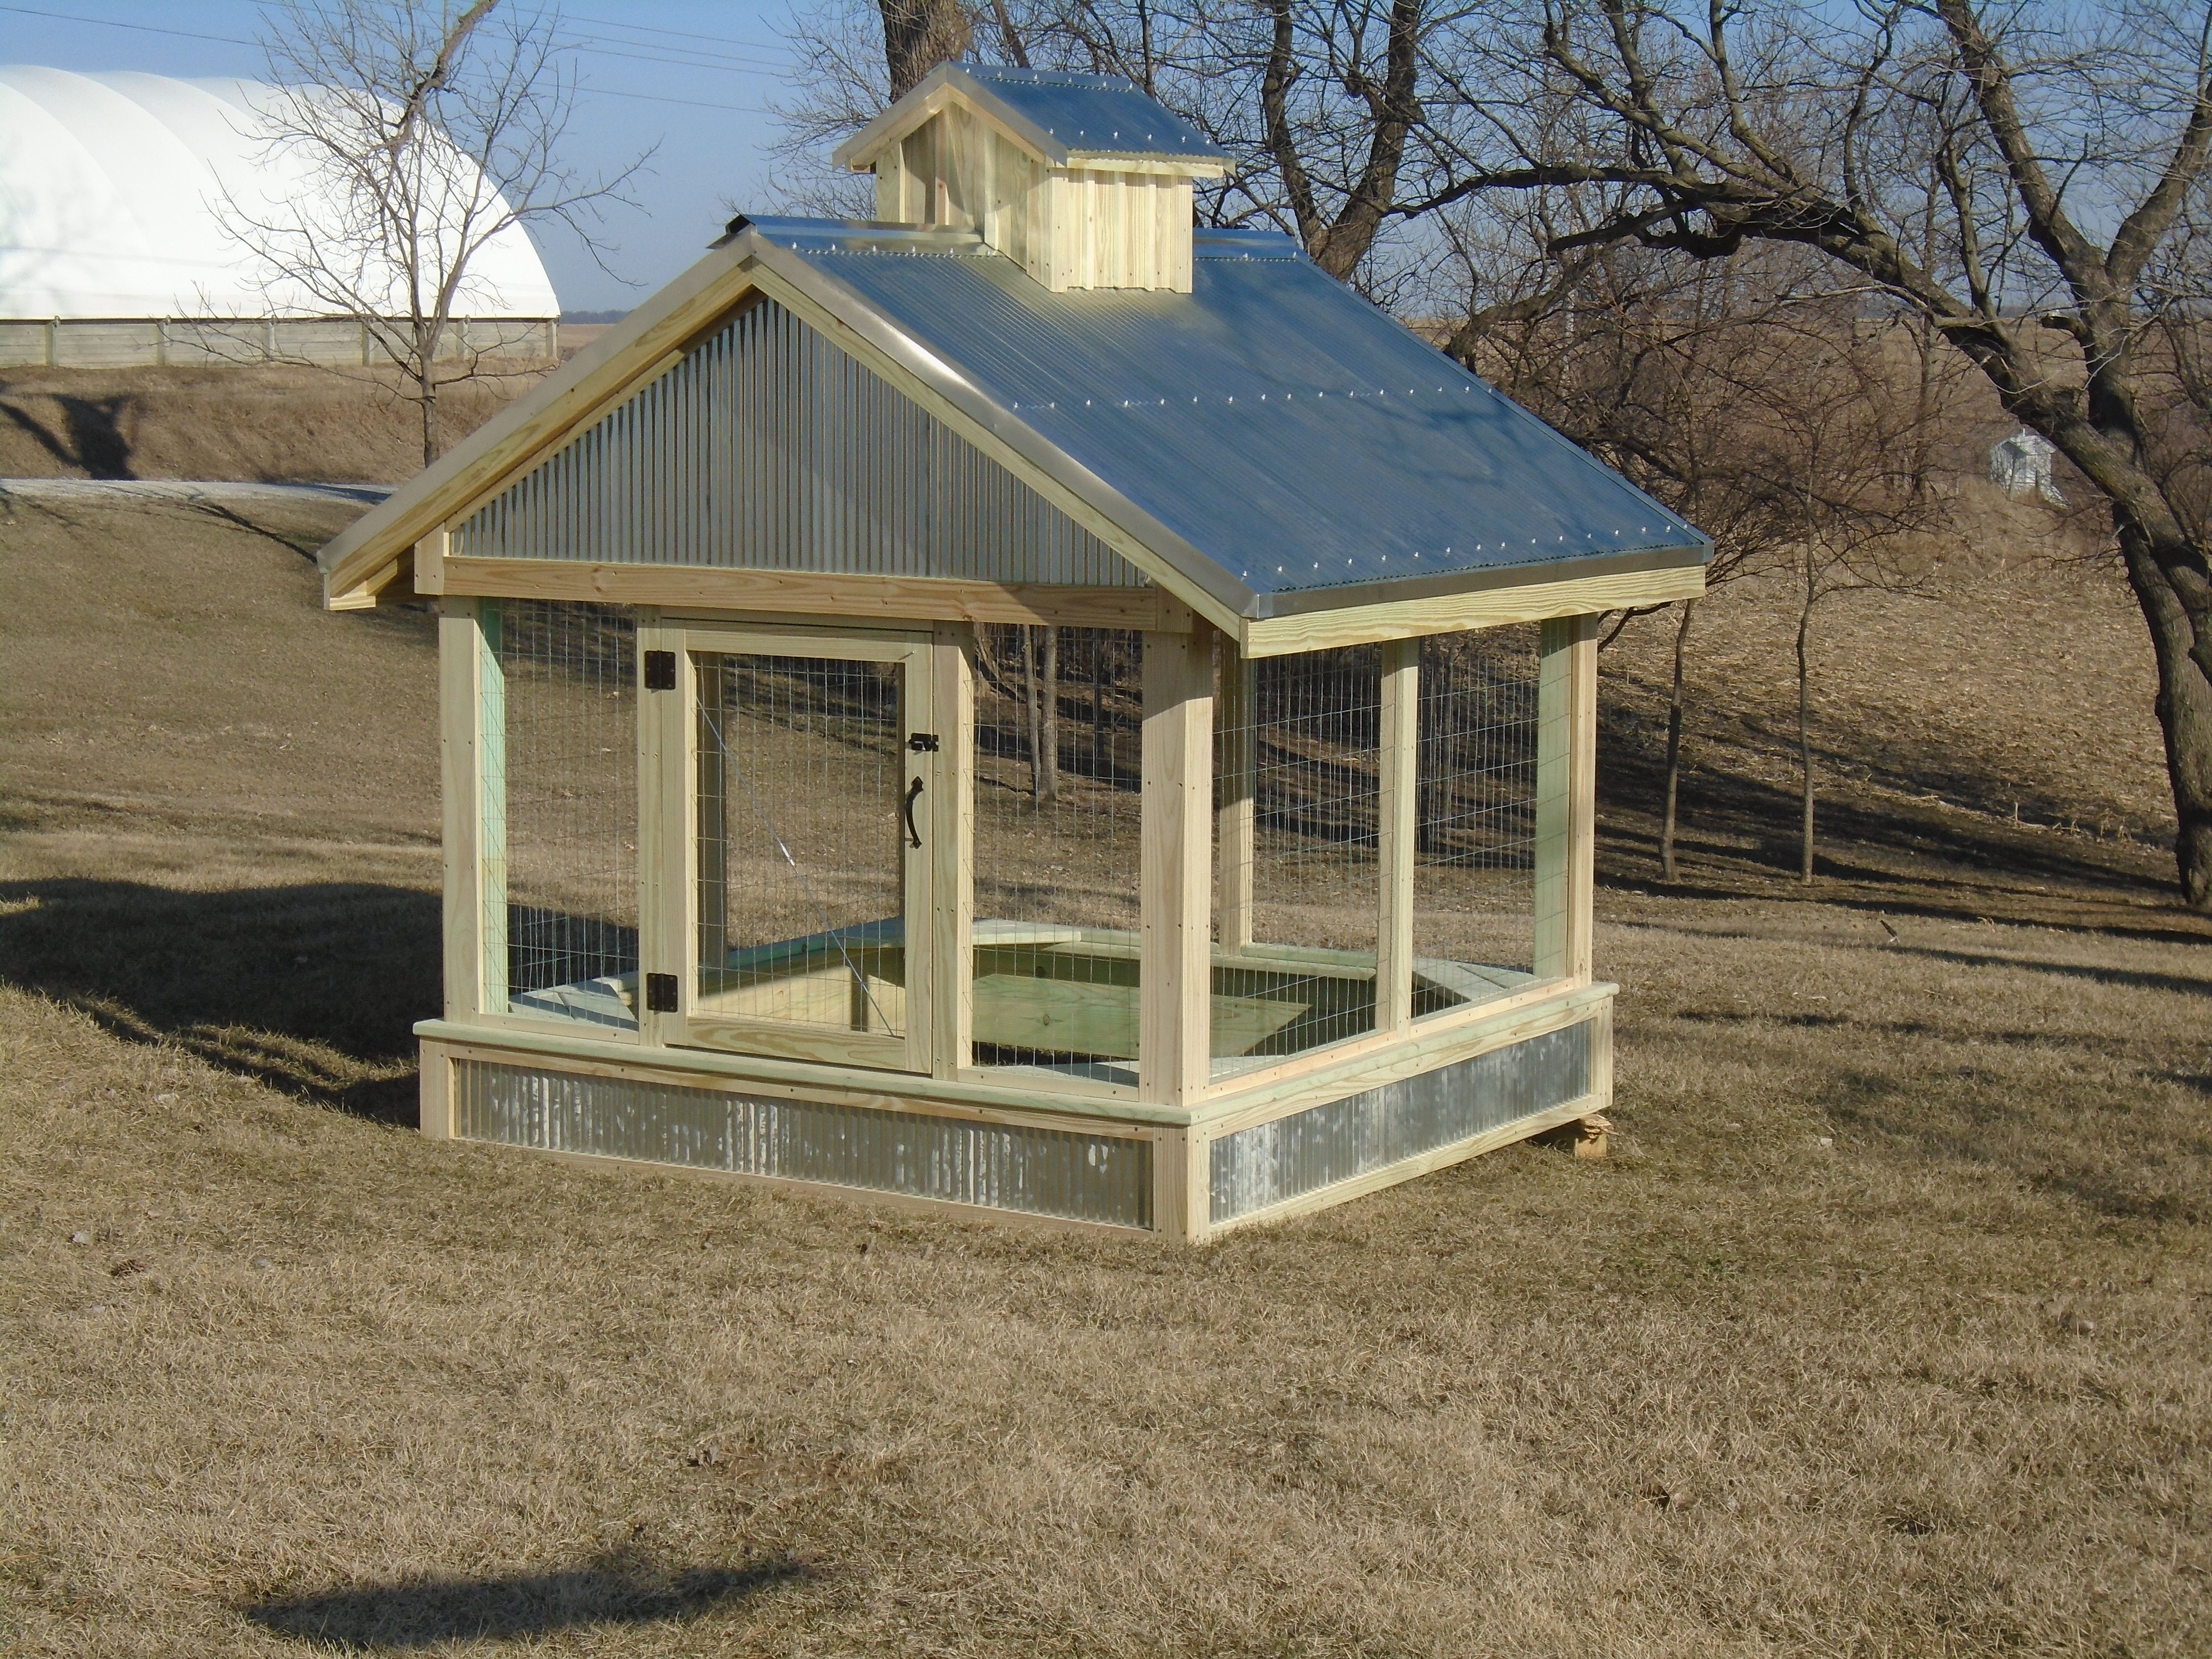 Covered Sandbox Farm Style With Cupola Galvanized Roof And Wire Screen So Critters Can T Get In Sandboxes Galvanized Roofing Barbie Dream House